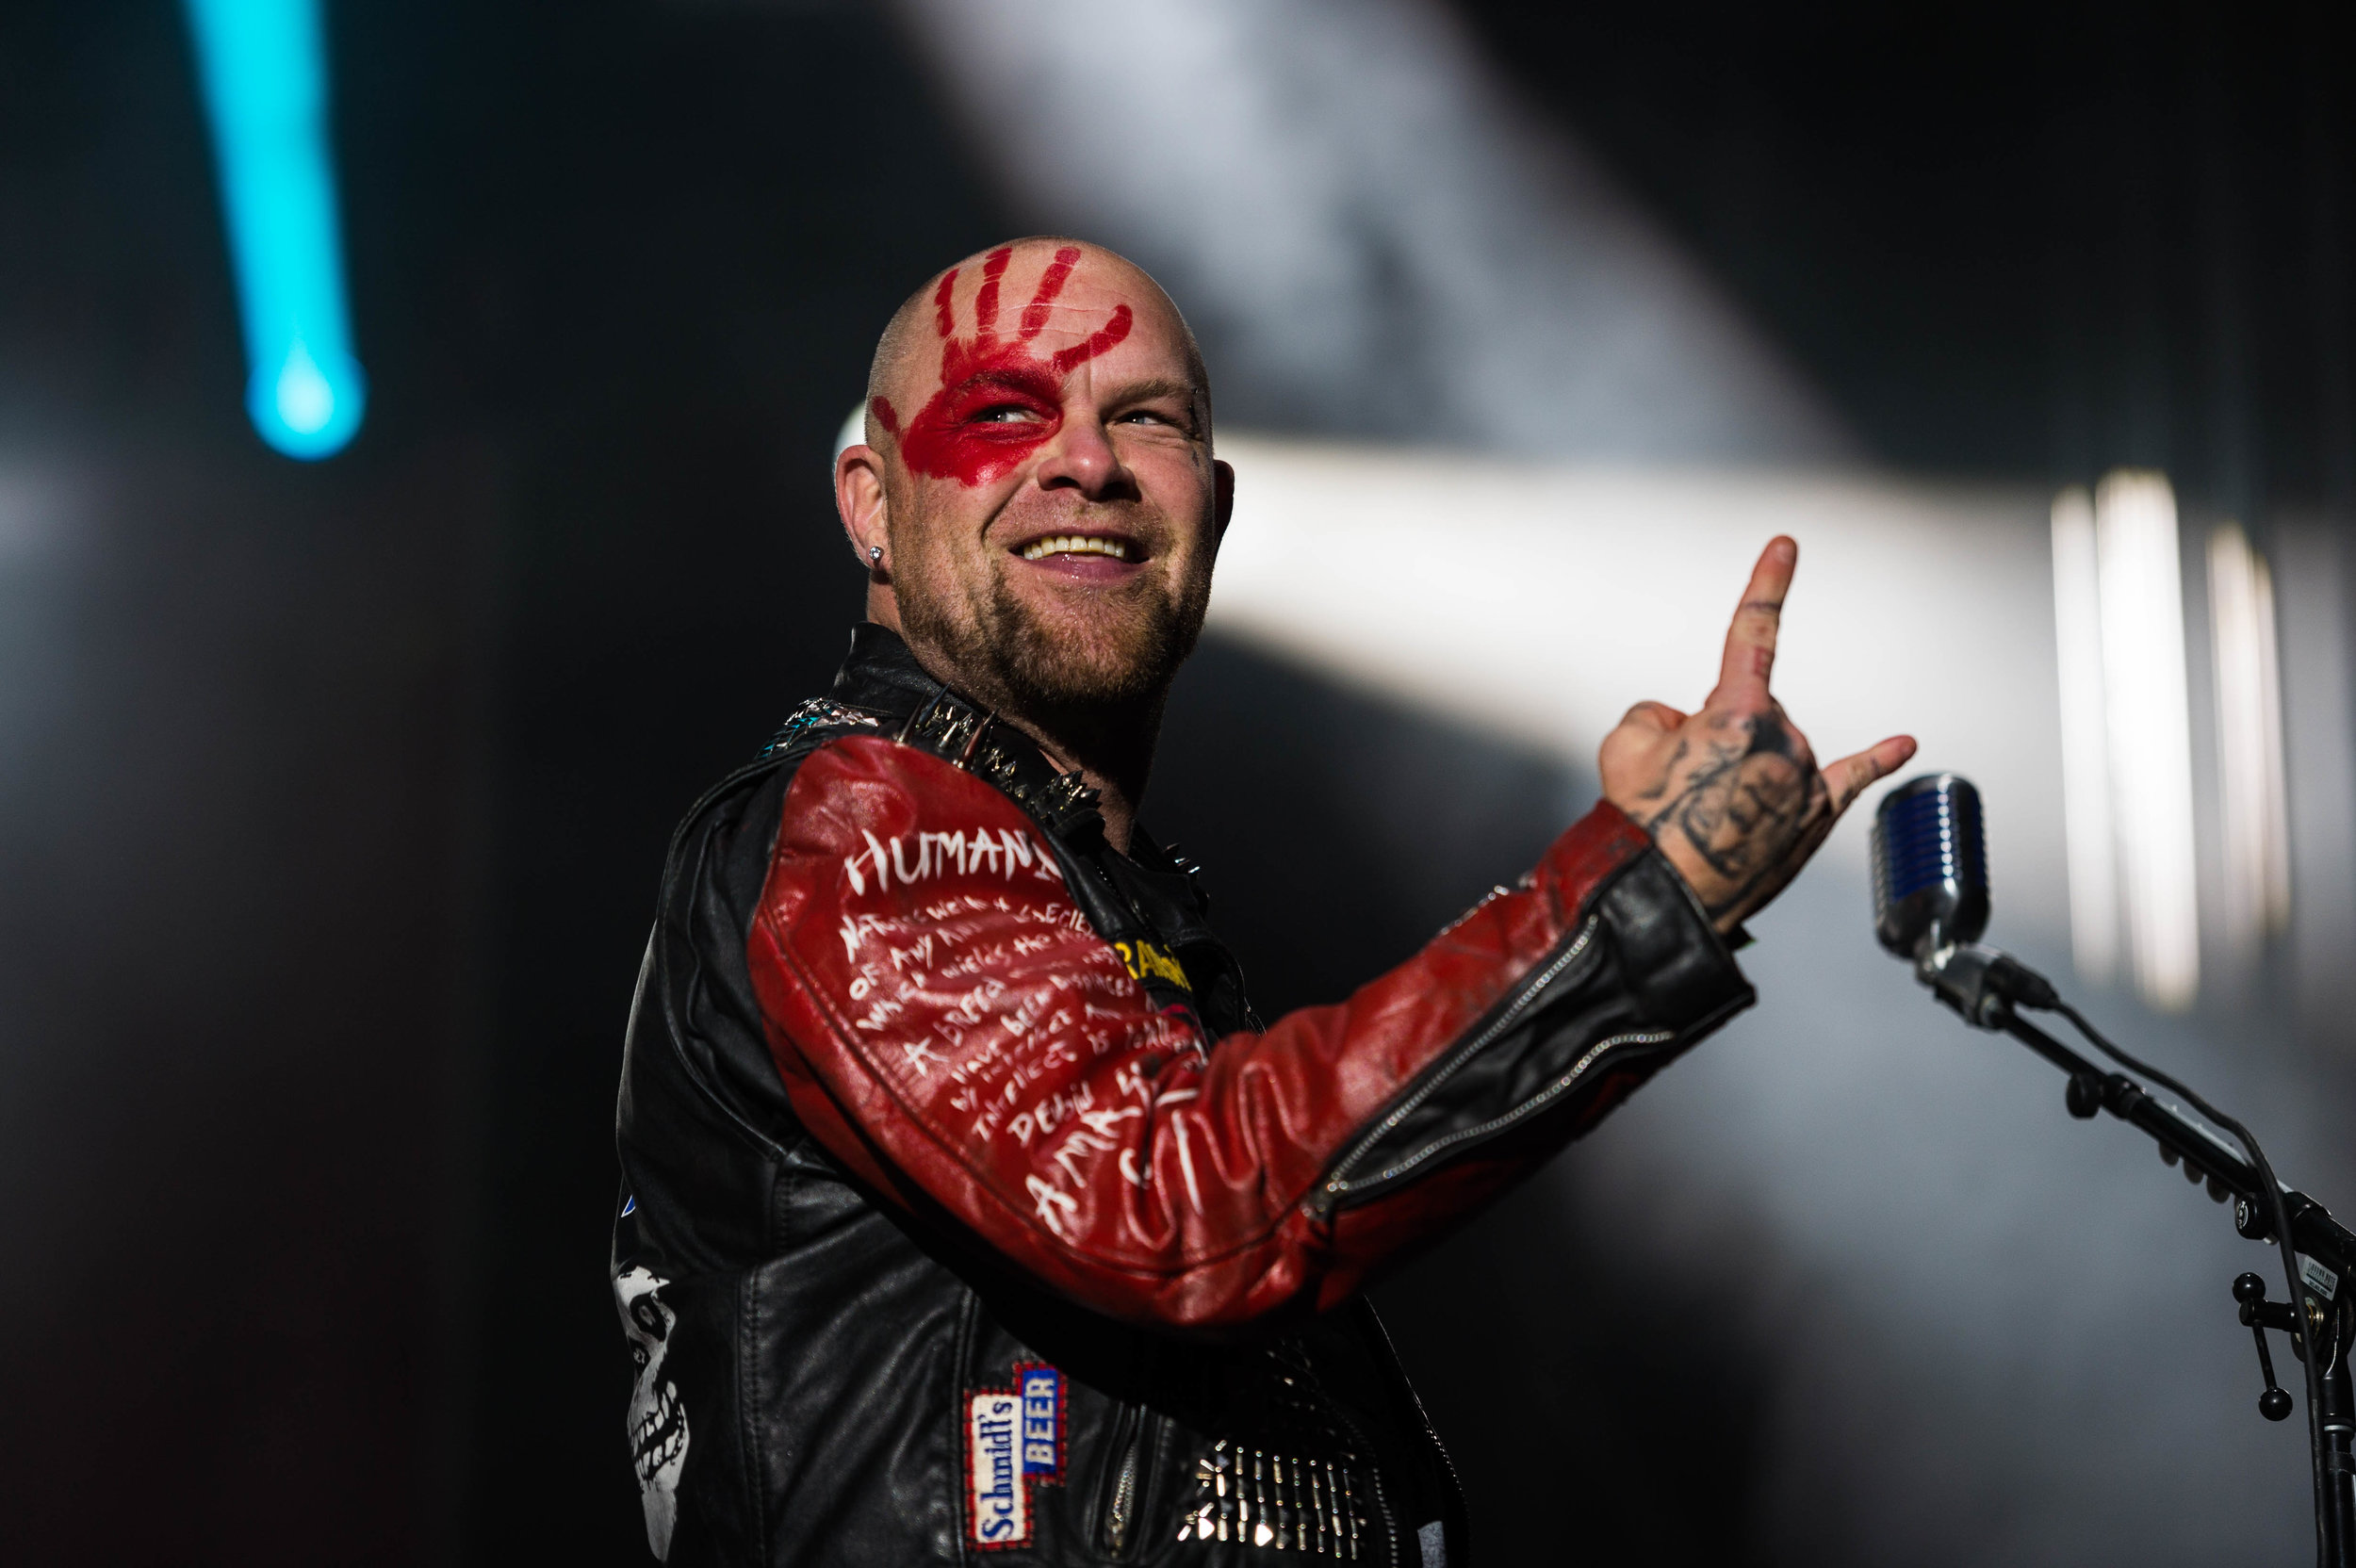 Five Finger Death Punch Sep 30 2017-7.jpg